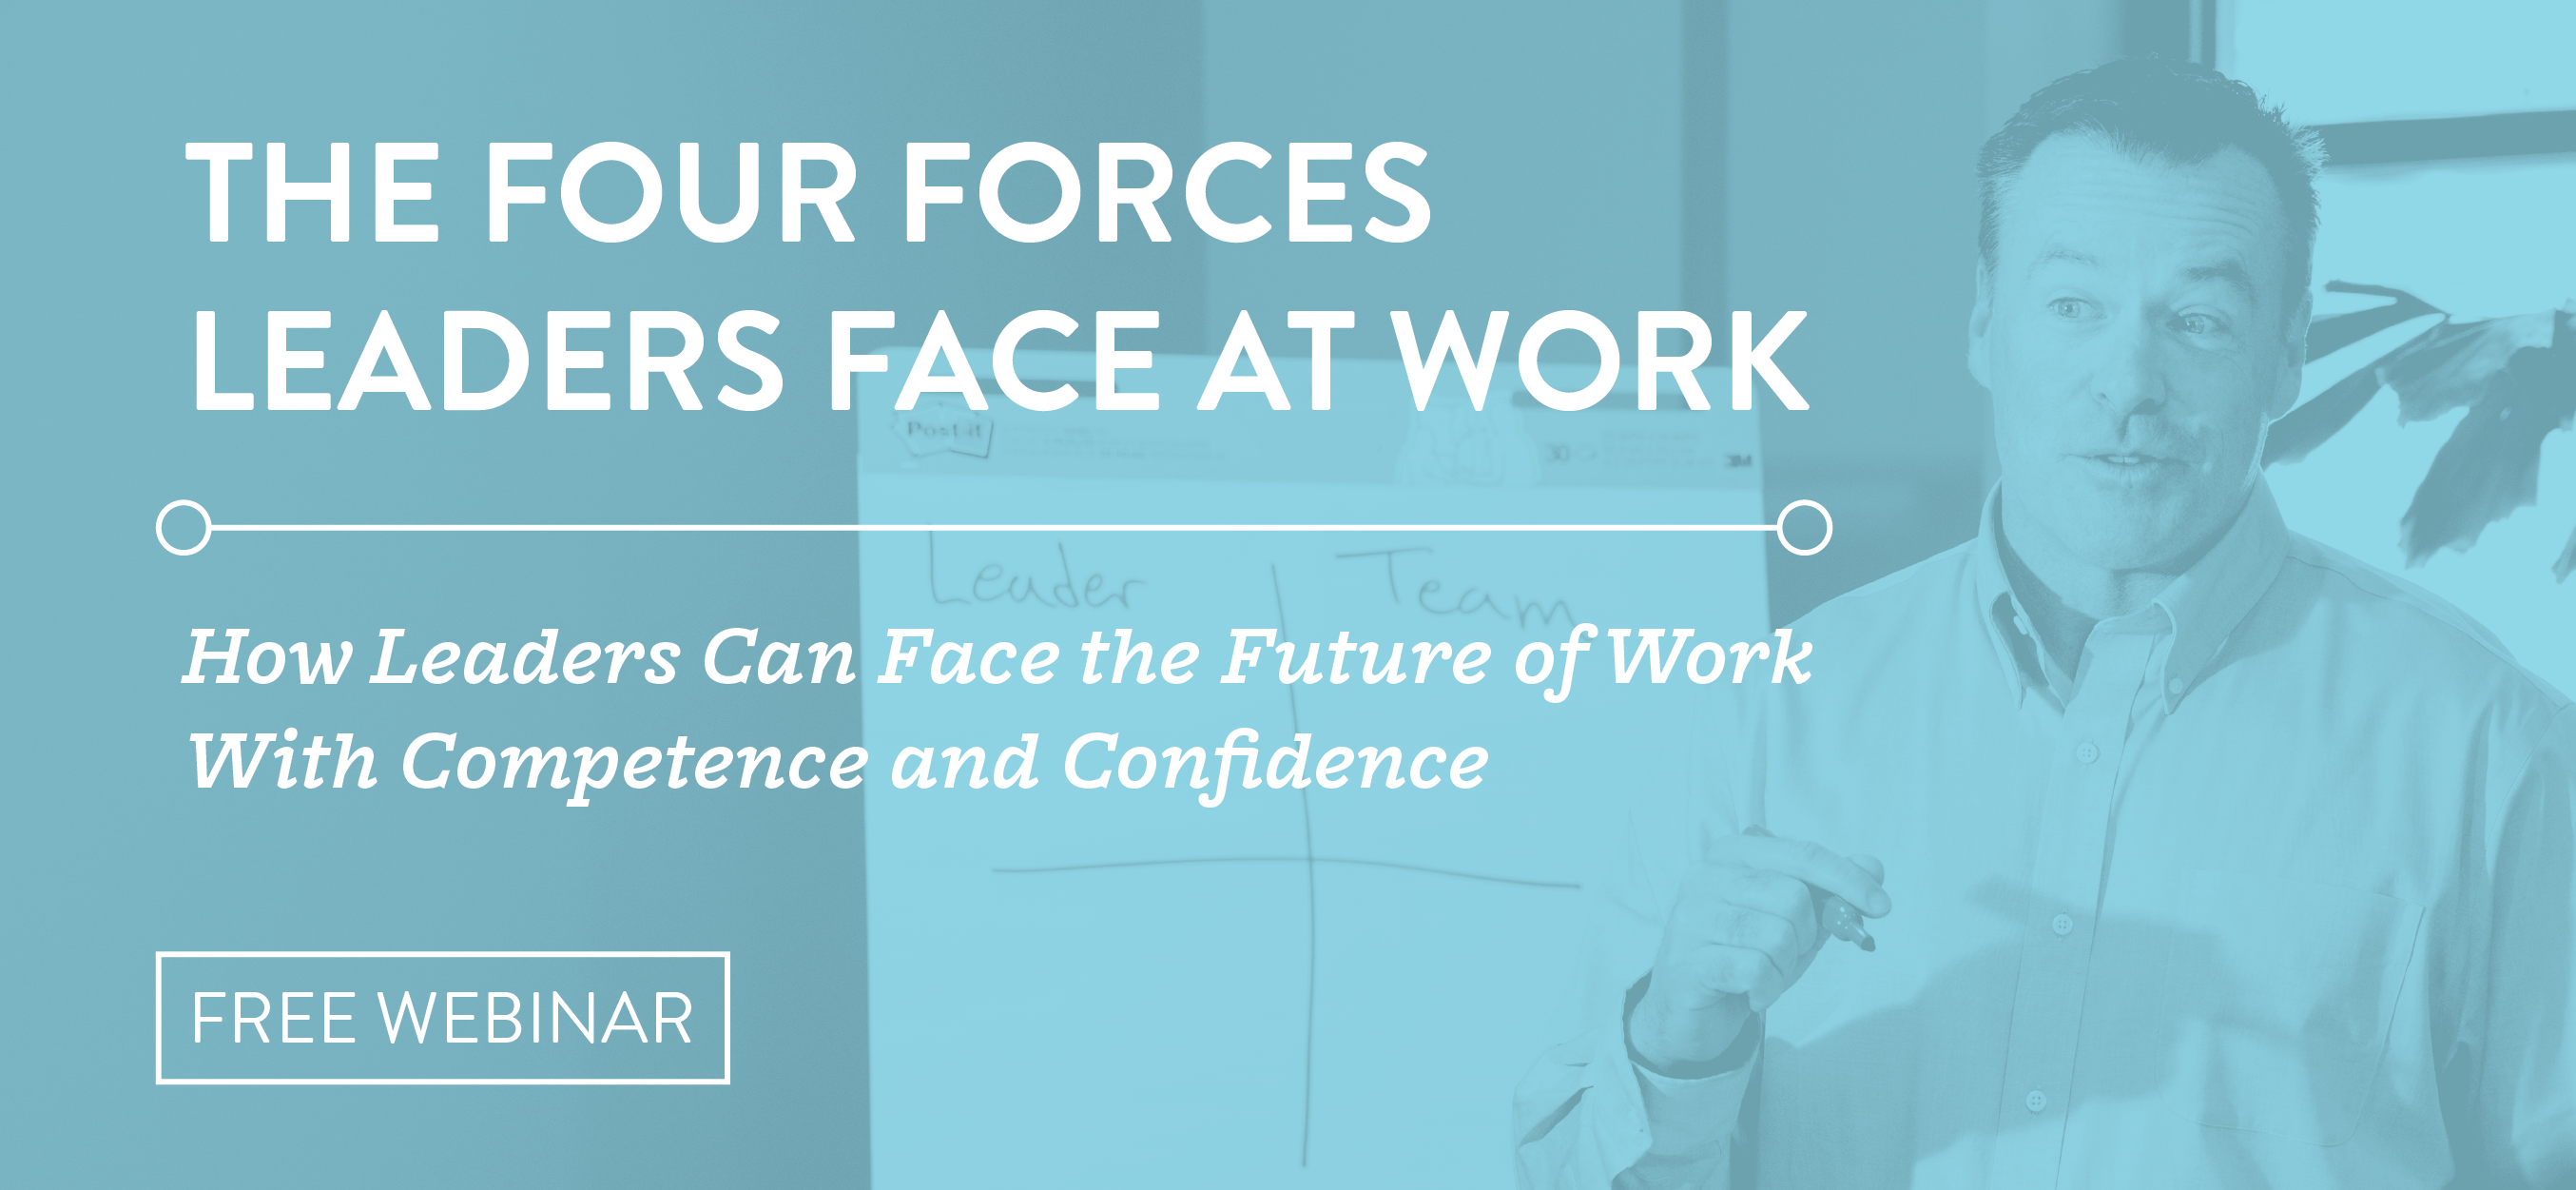 June-2020-The-Four-Forces-Leaders-Face-at-Work-Webinar-LP-graphic